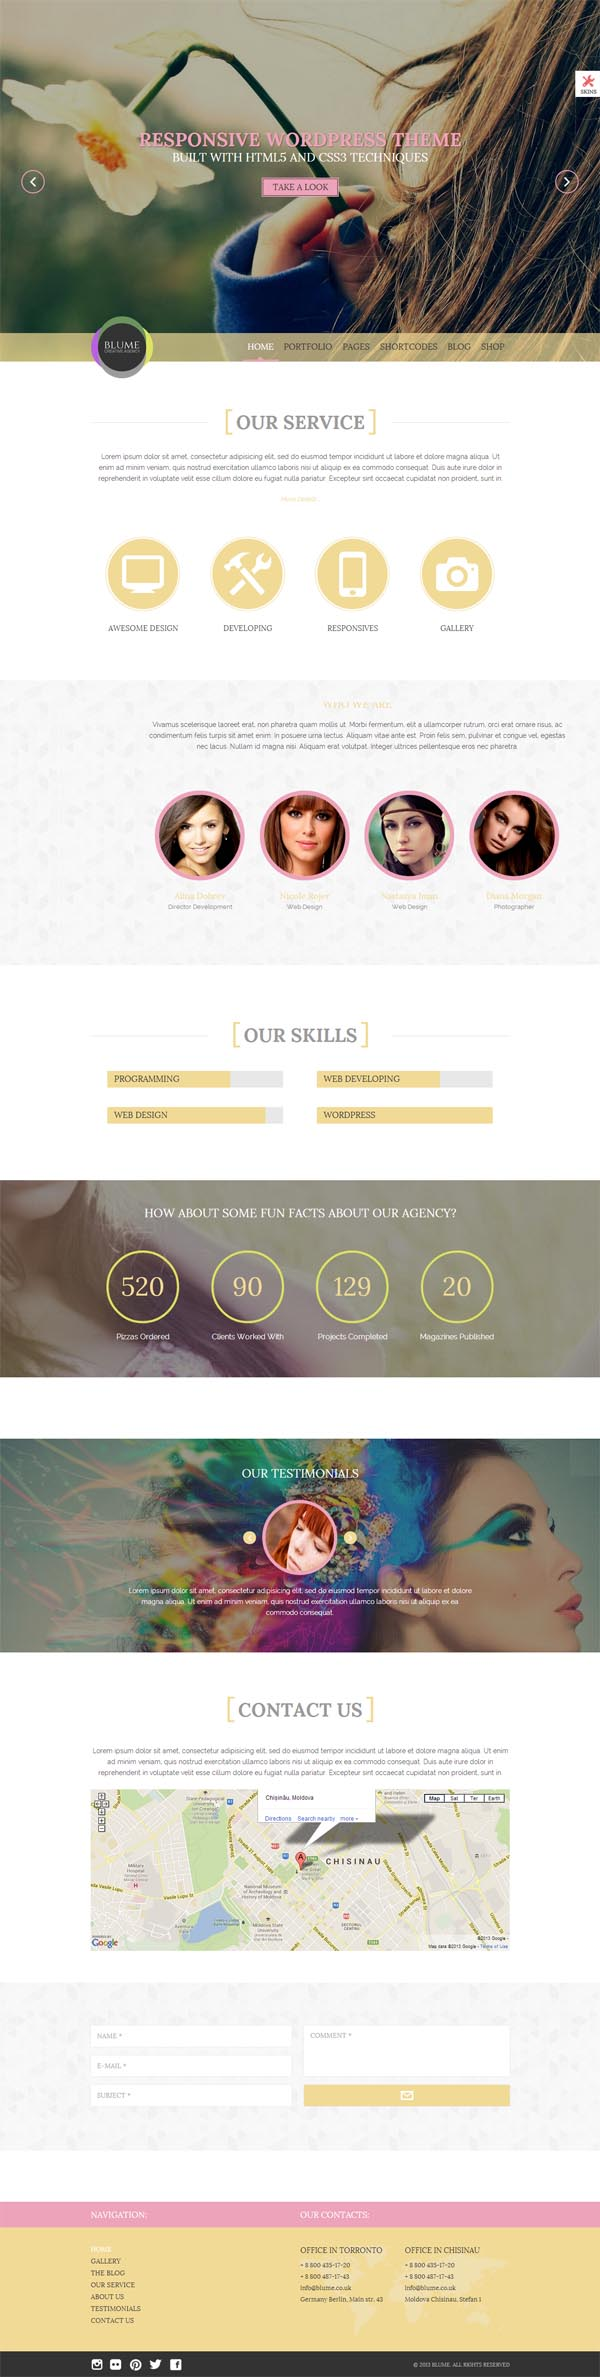 Blume - Responsive WordPress Theme